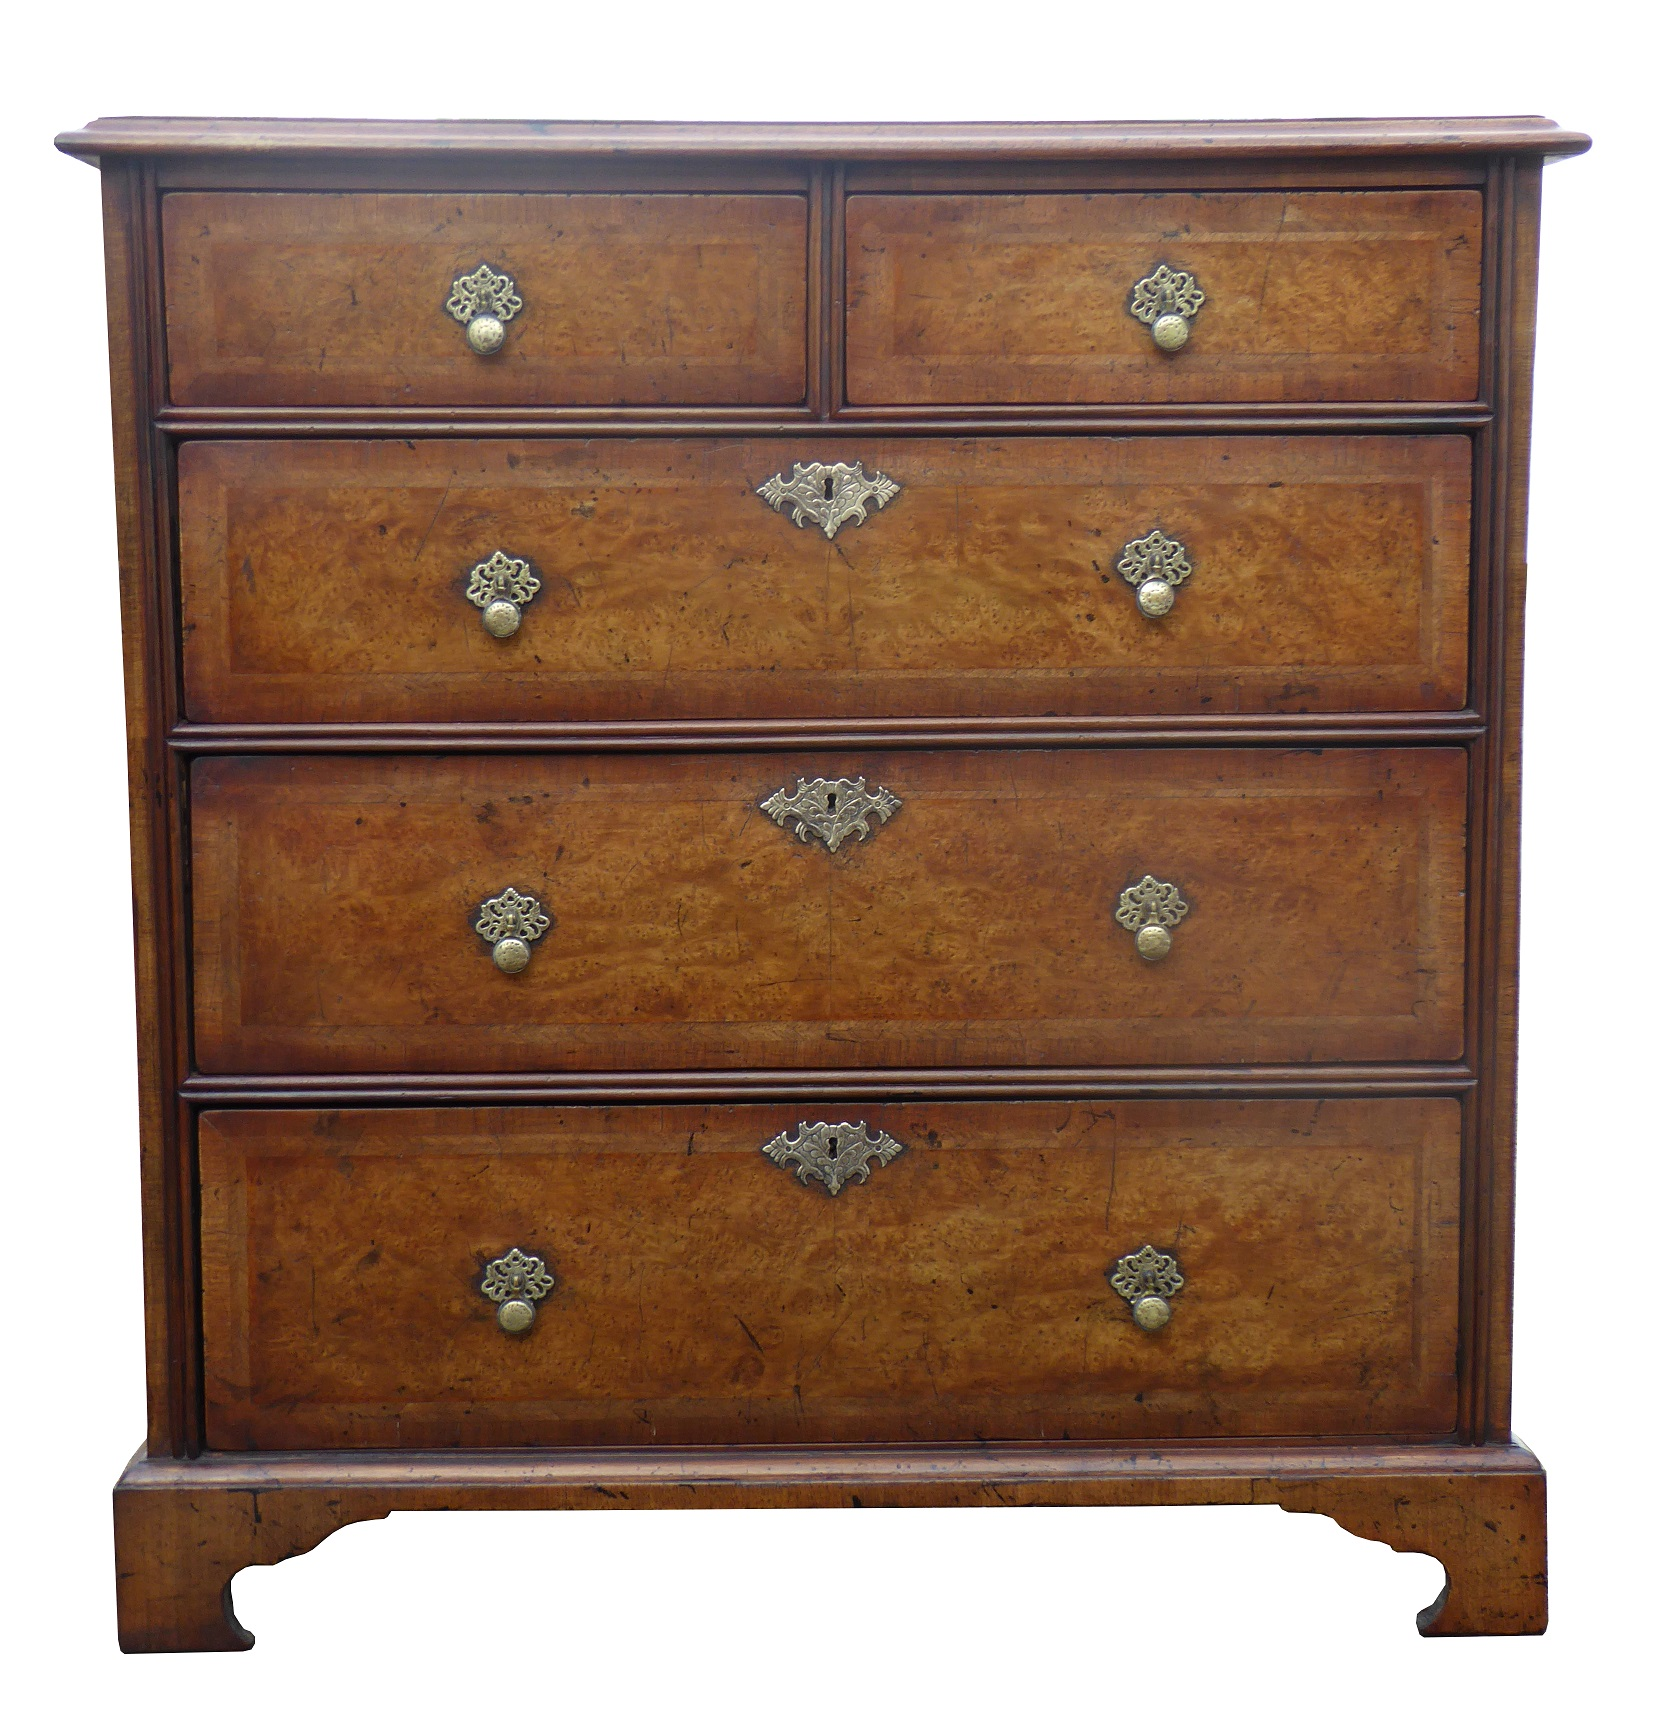 George Iii Burr Walnut Chest Of Drawers Fgb Antiques